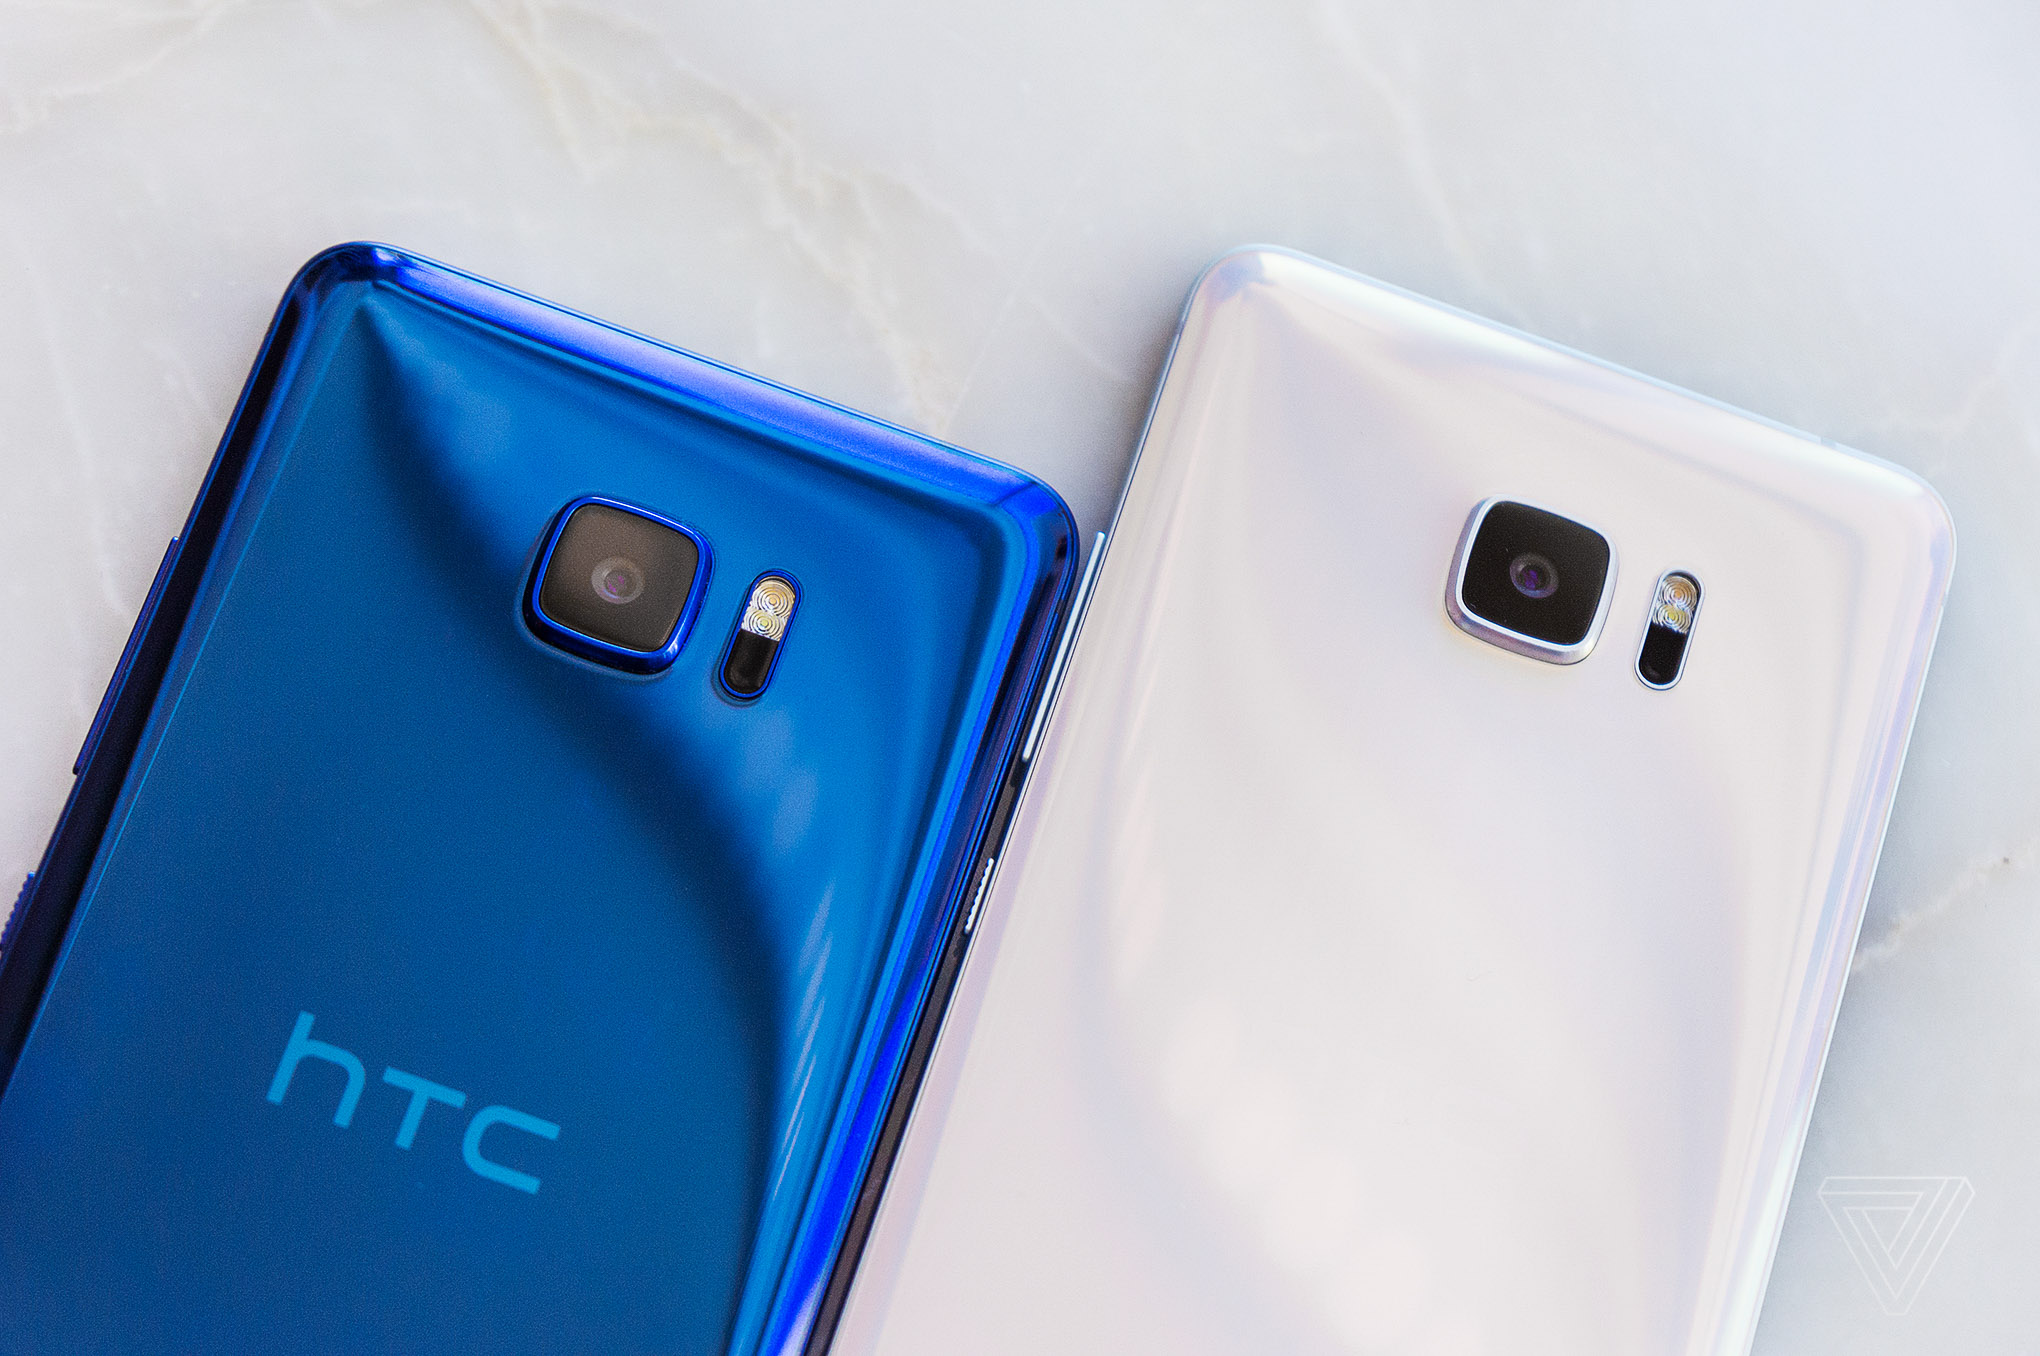 HTC U Ultra in blue and white